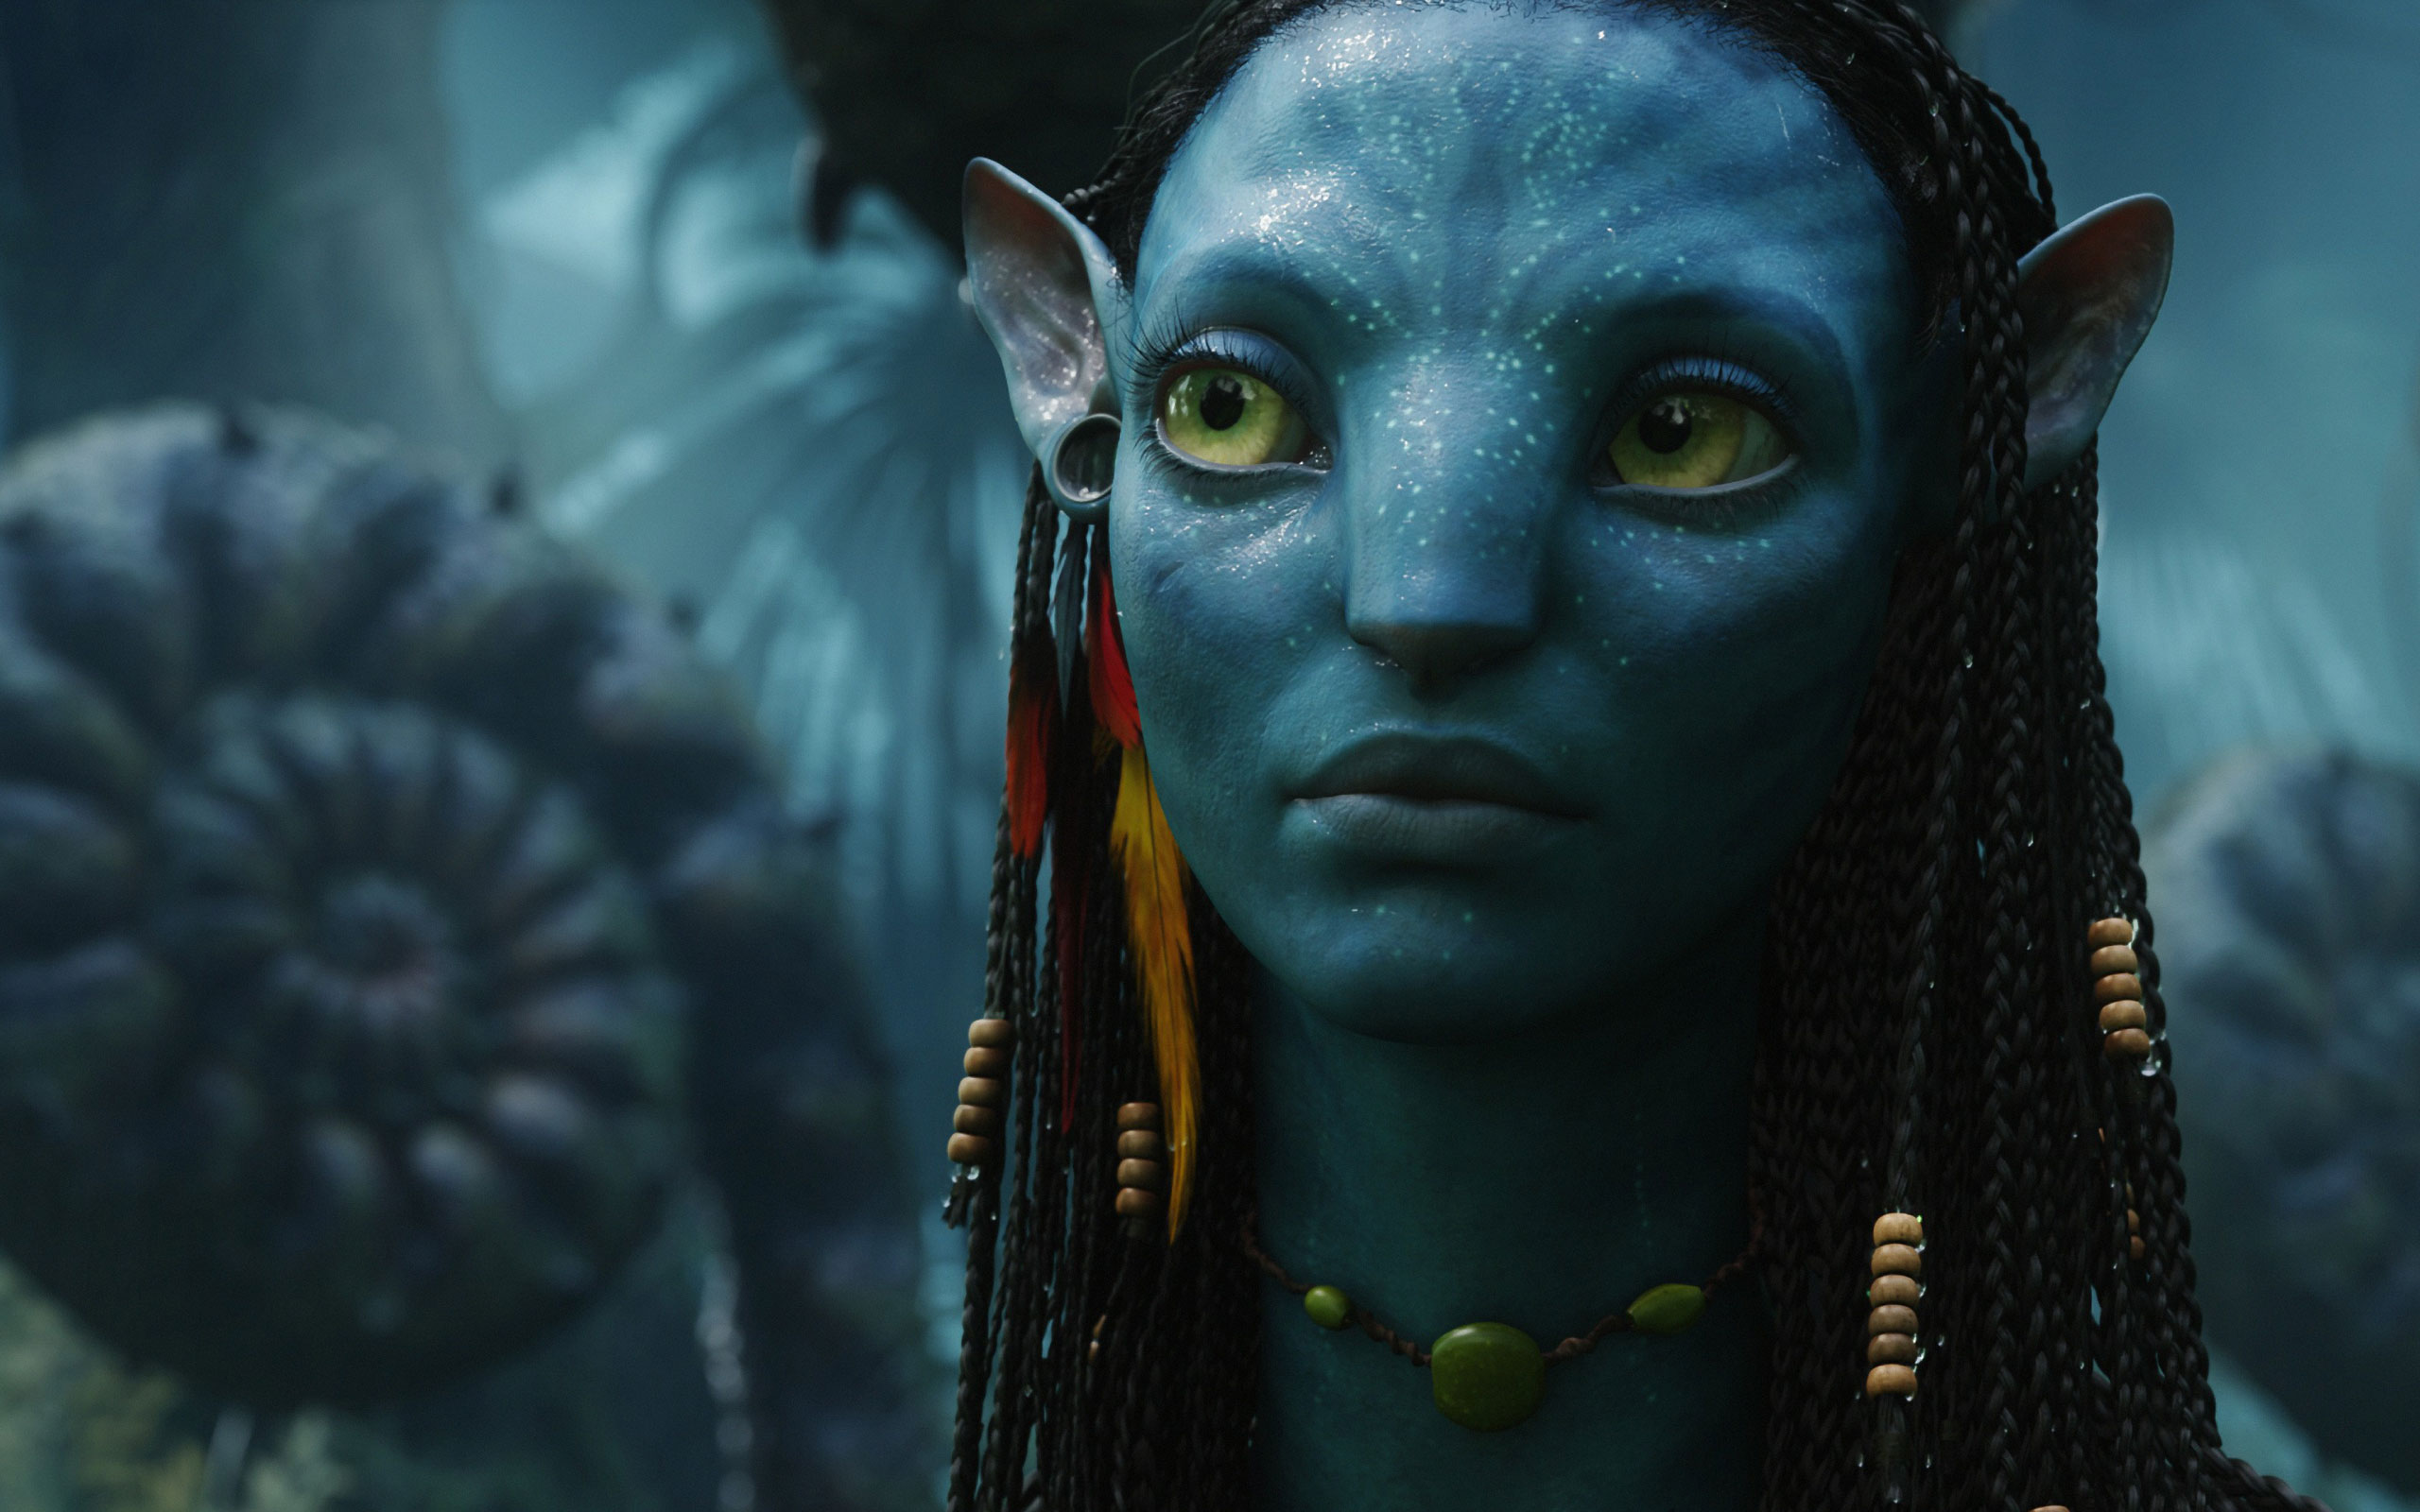 Neytiri Female in Avatar 462.58 Kb